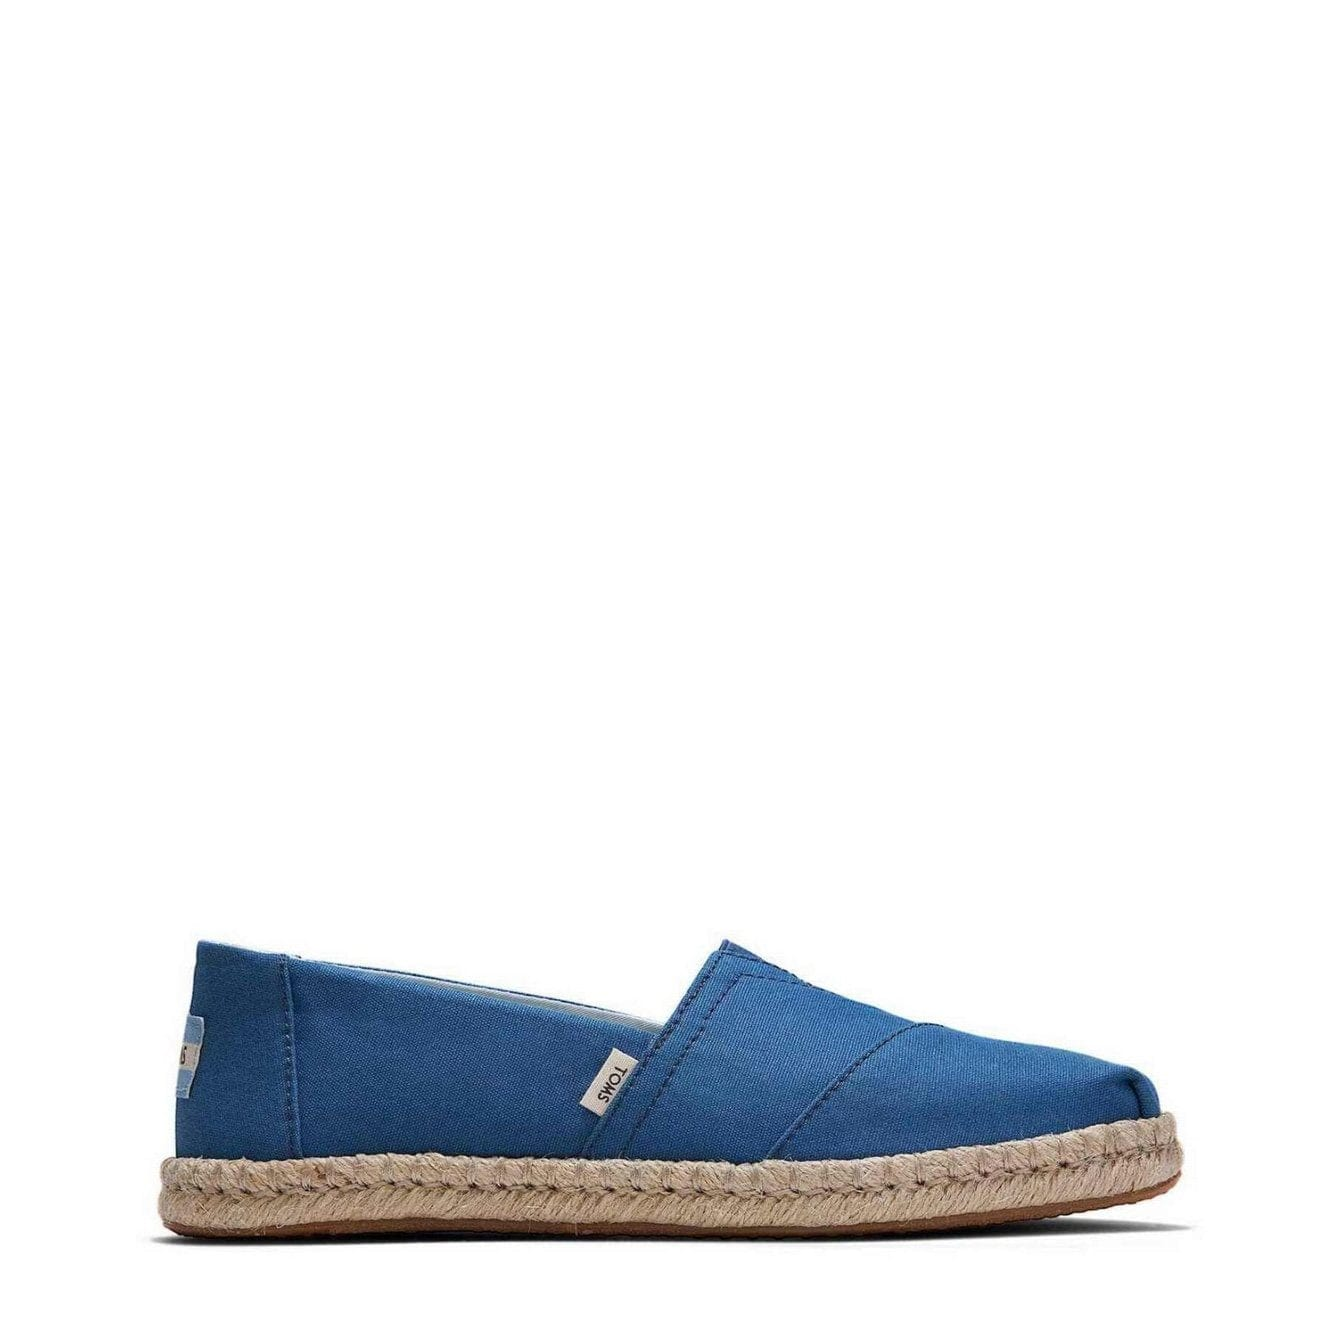 Toms Womens Espadrilles Plant Dyed